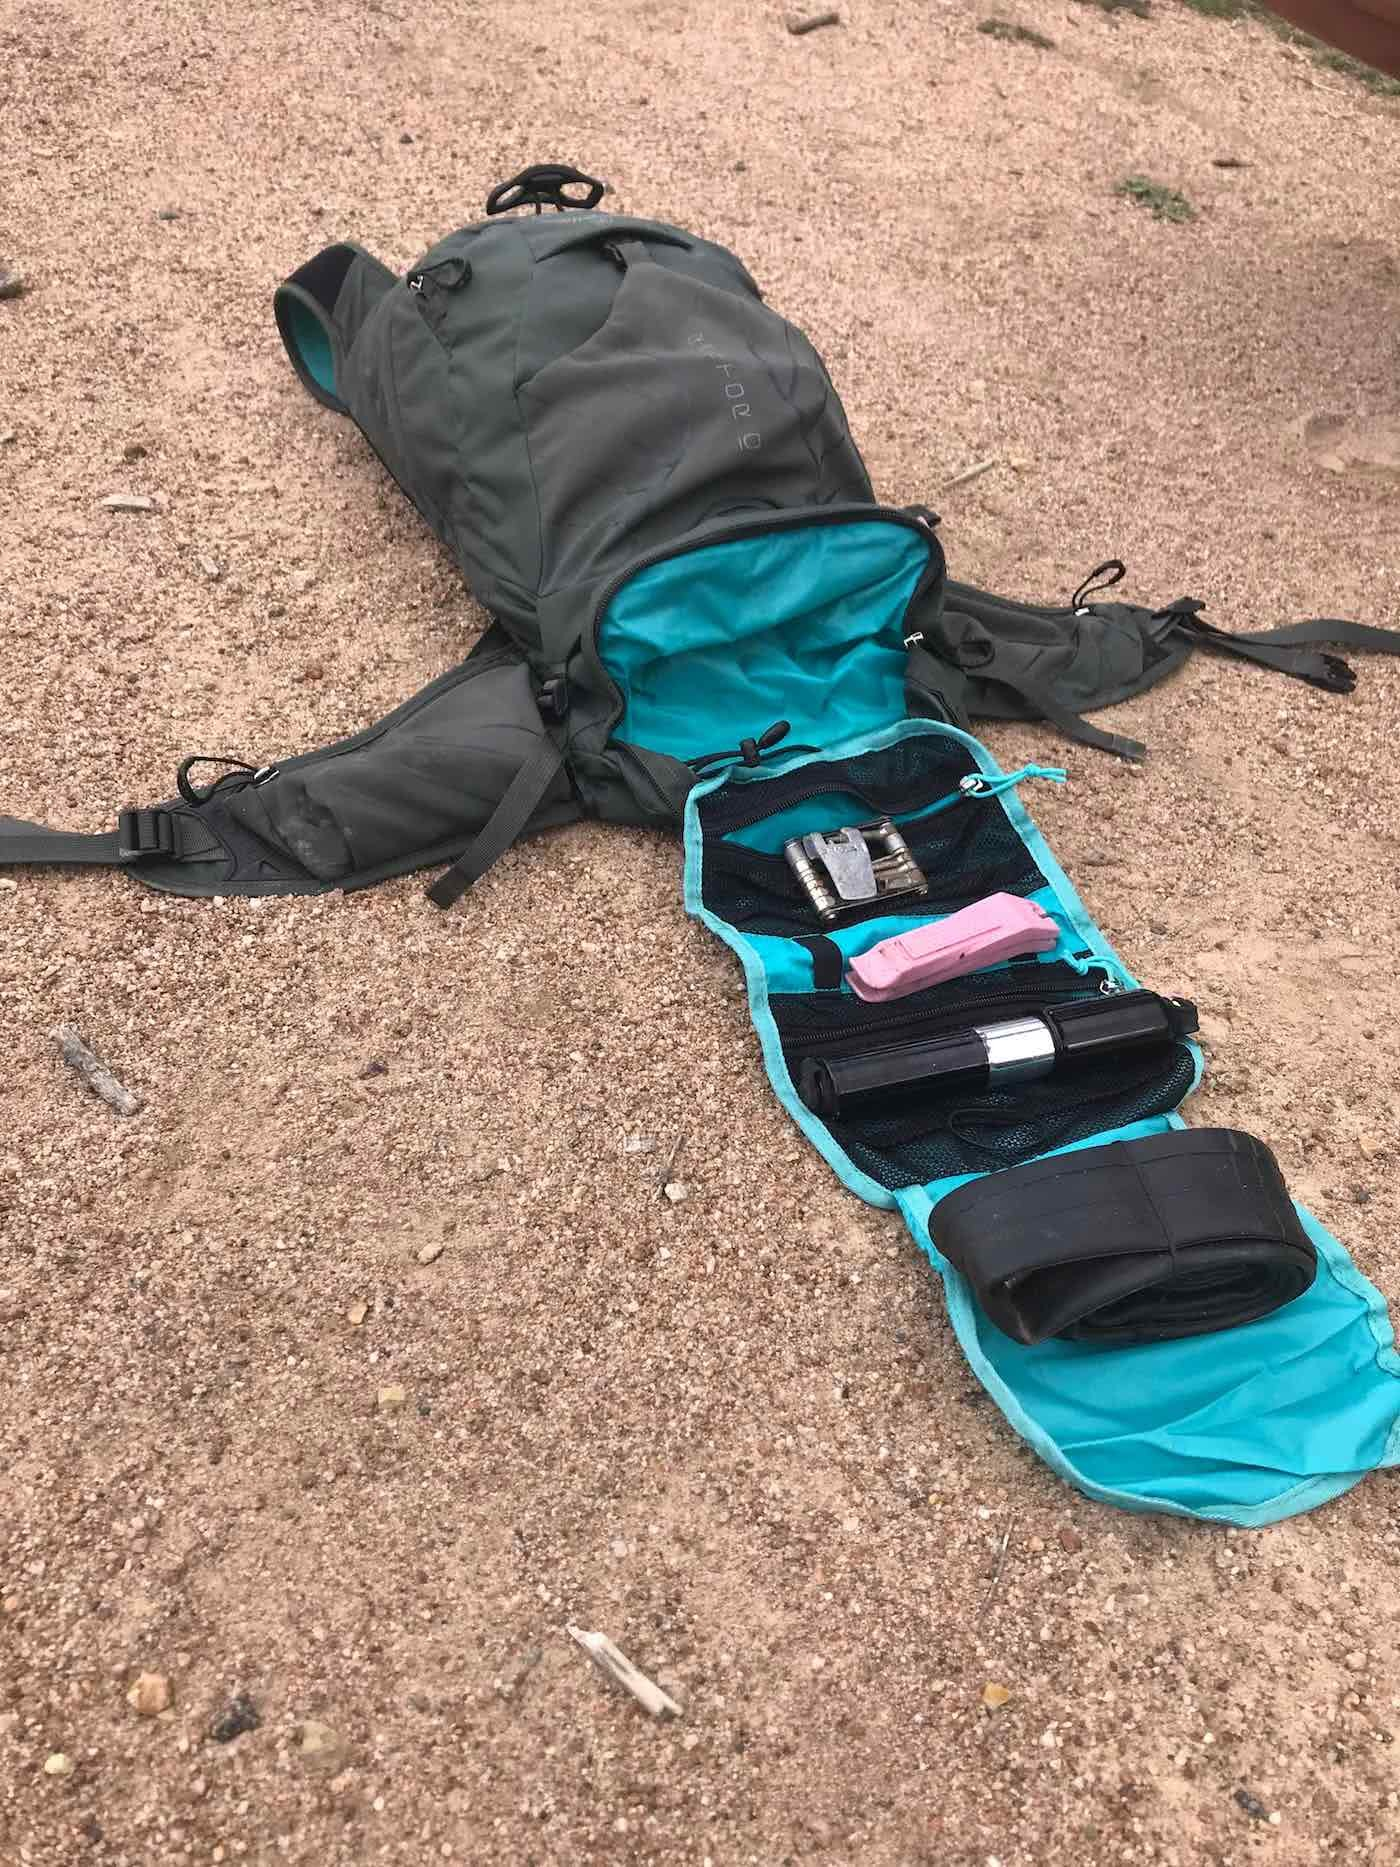 Osprey Raptor 10 Riding Pack // Gear Review by Rowan Beggs-French cycling backpack, rock garden, mountain biking, tool section